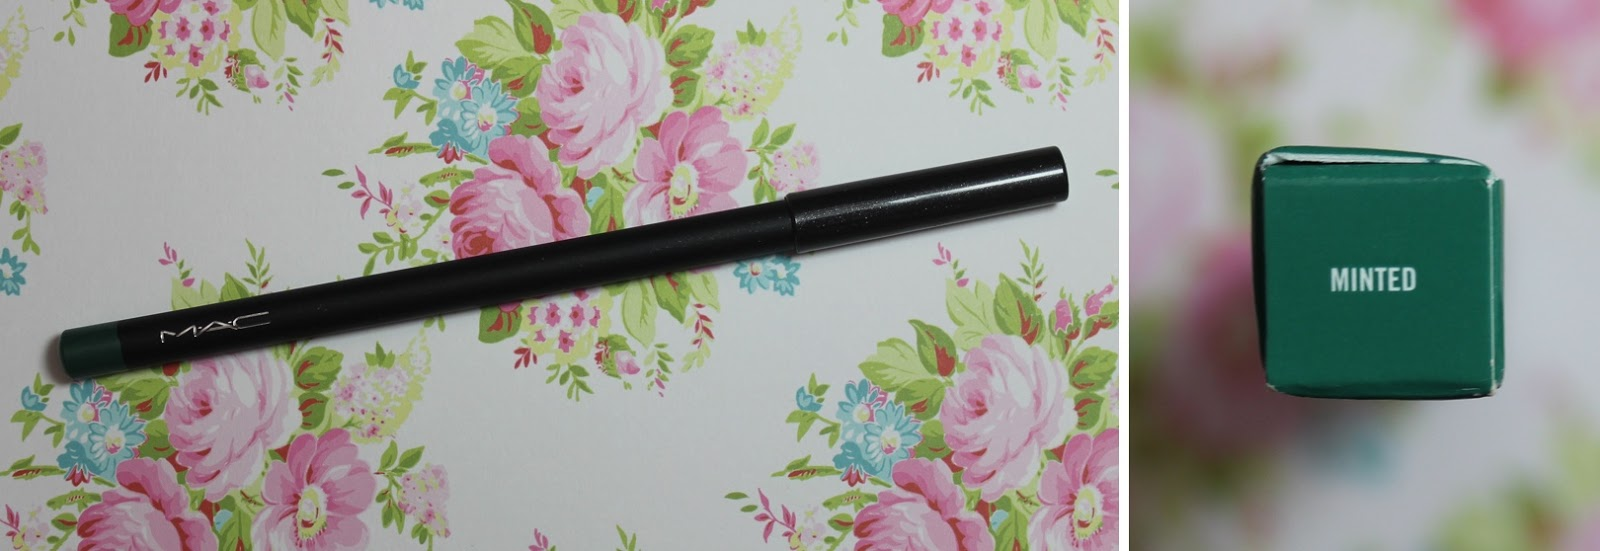 mac minted eye kohl review